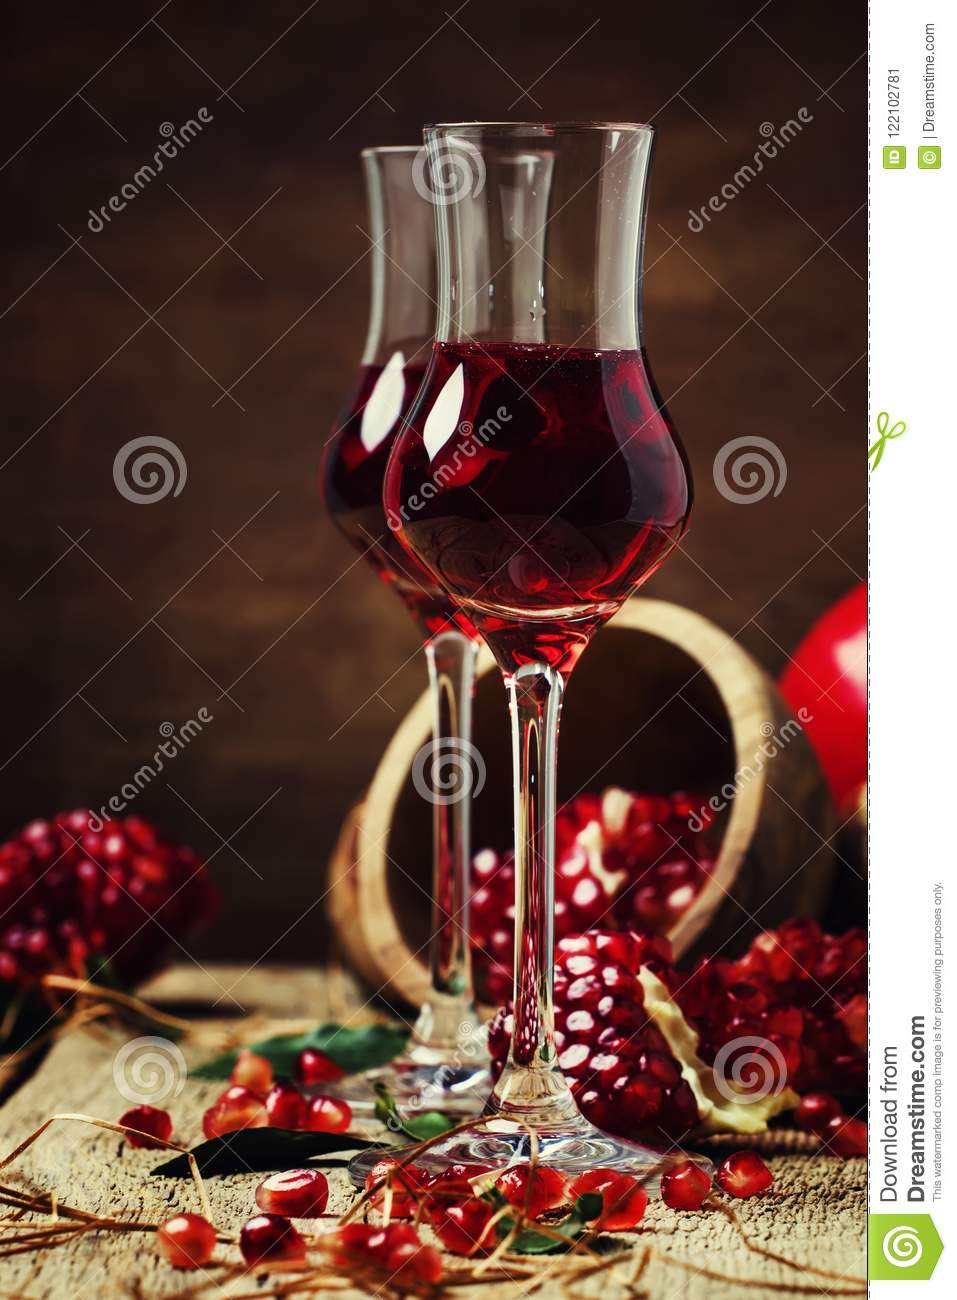 Pomegranate liqueur, still life in rustic style, vintage wooden